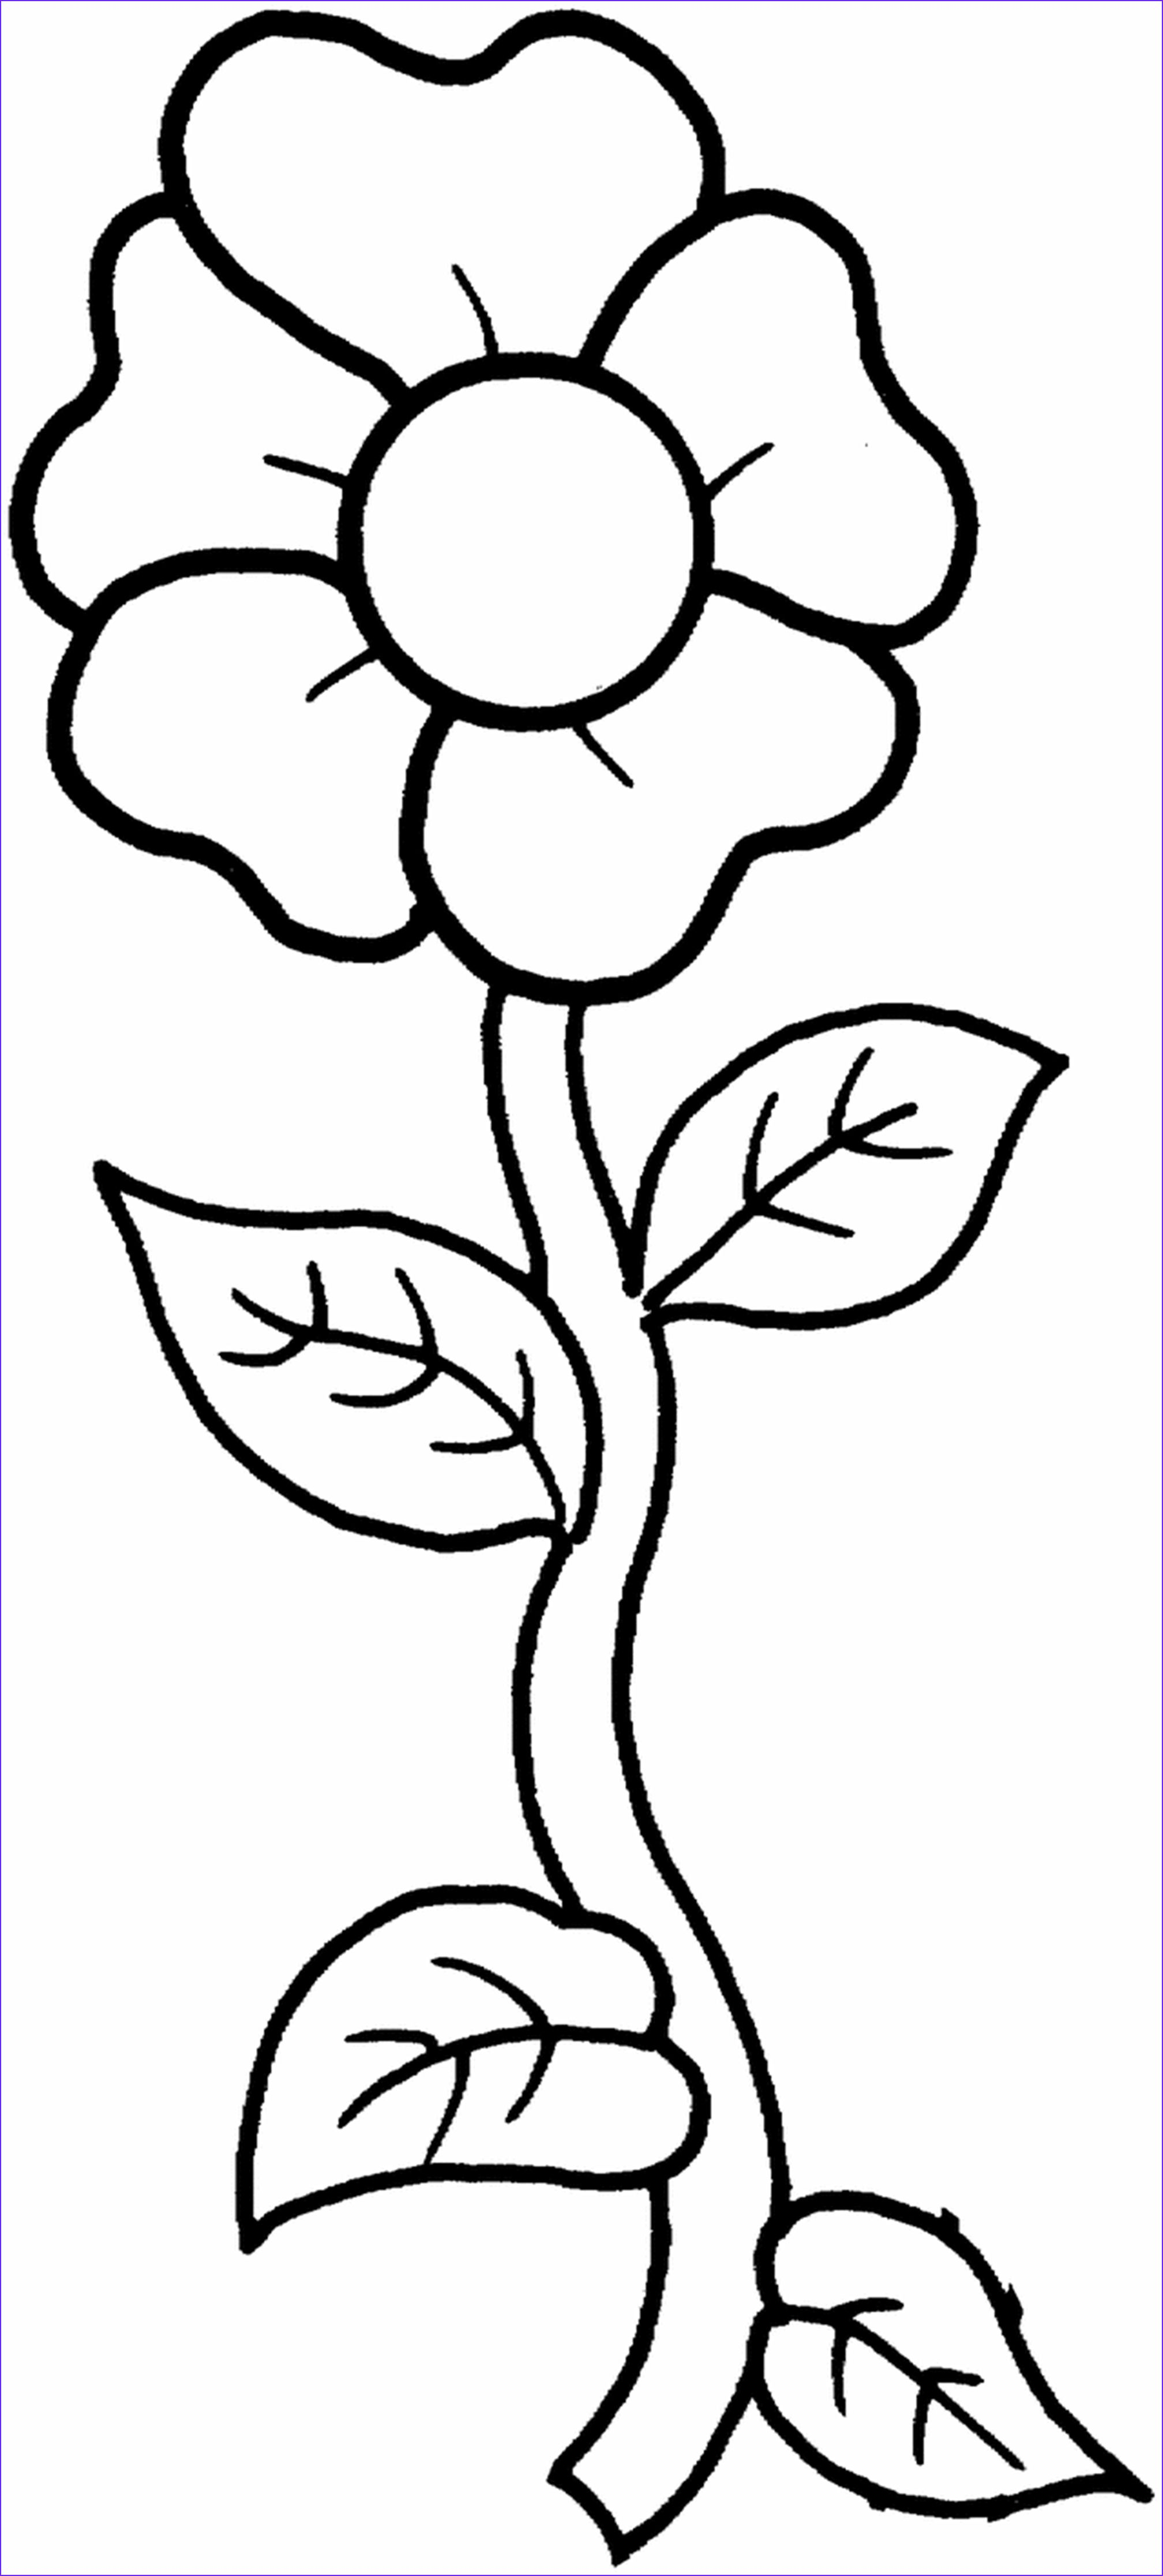 Free Printable Flower Coloring Pages For Kids Best Flower Coloring Pages Printable Flower Coloring Pages Abstract Coloring Pages